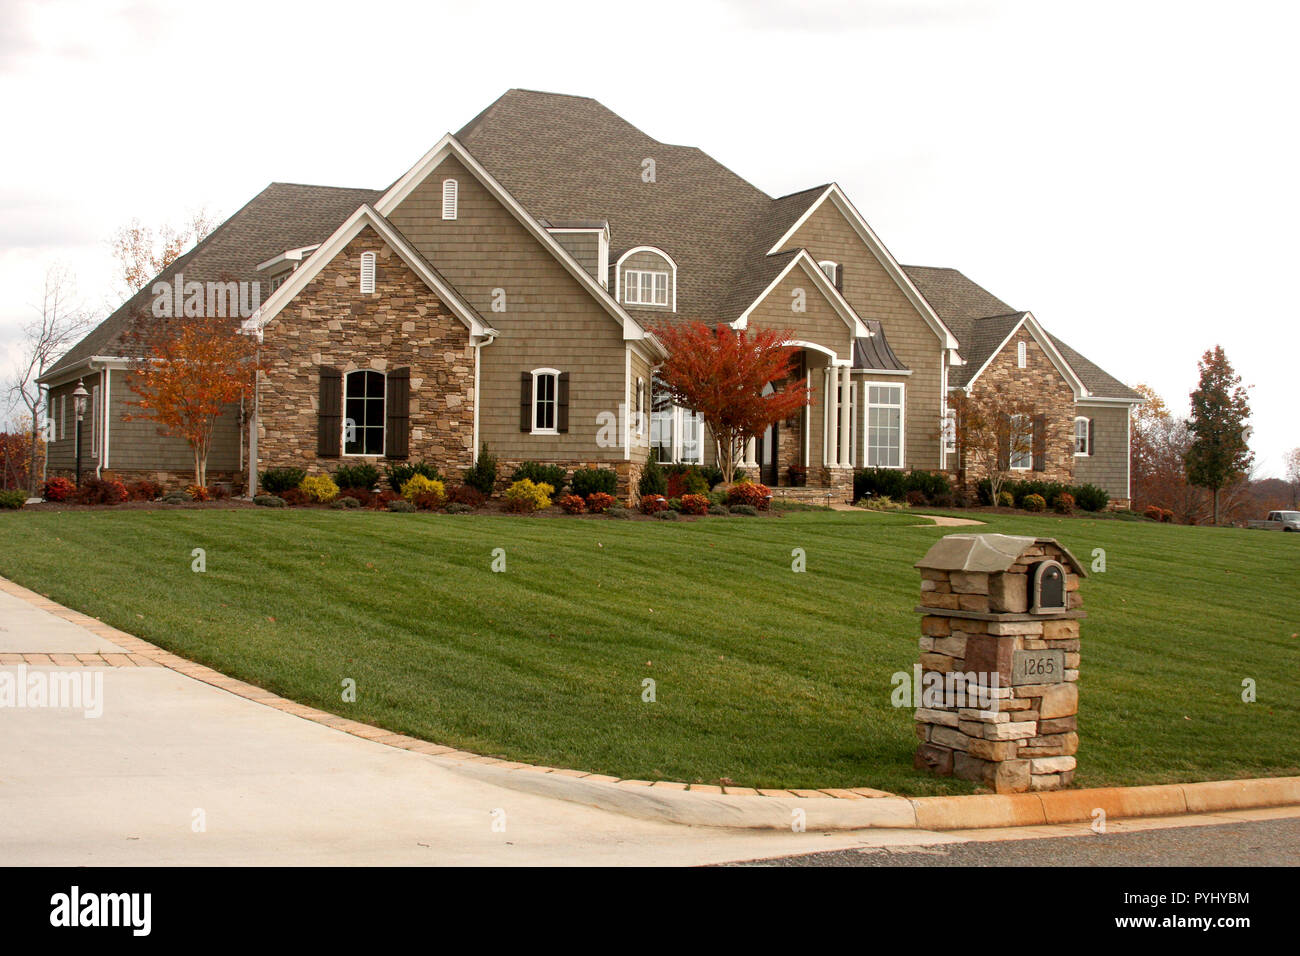 New large house in Virginia - Stock Image